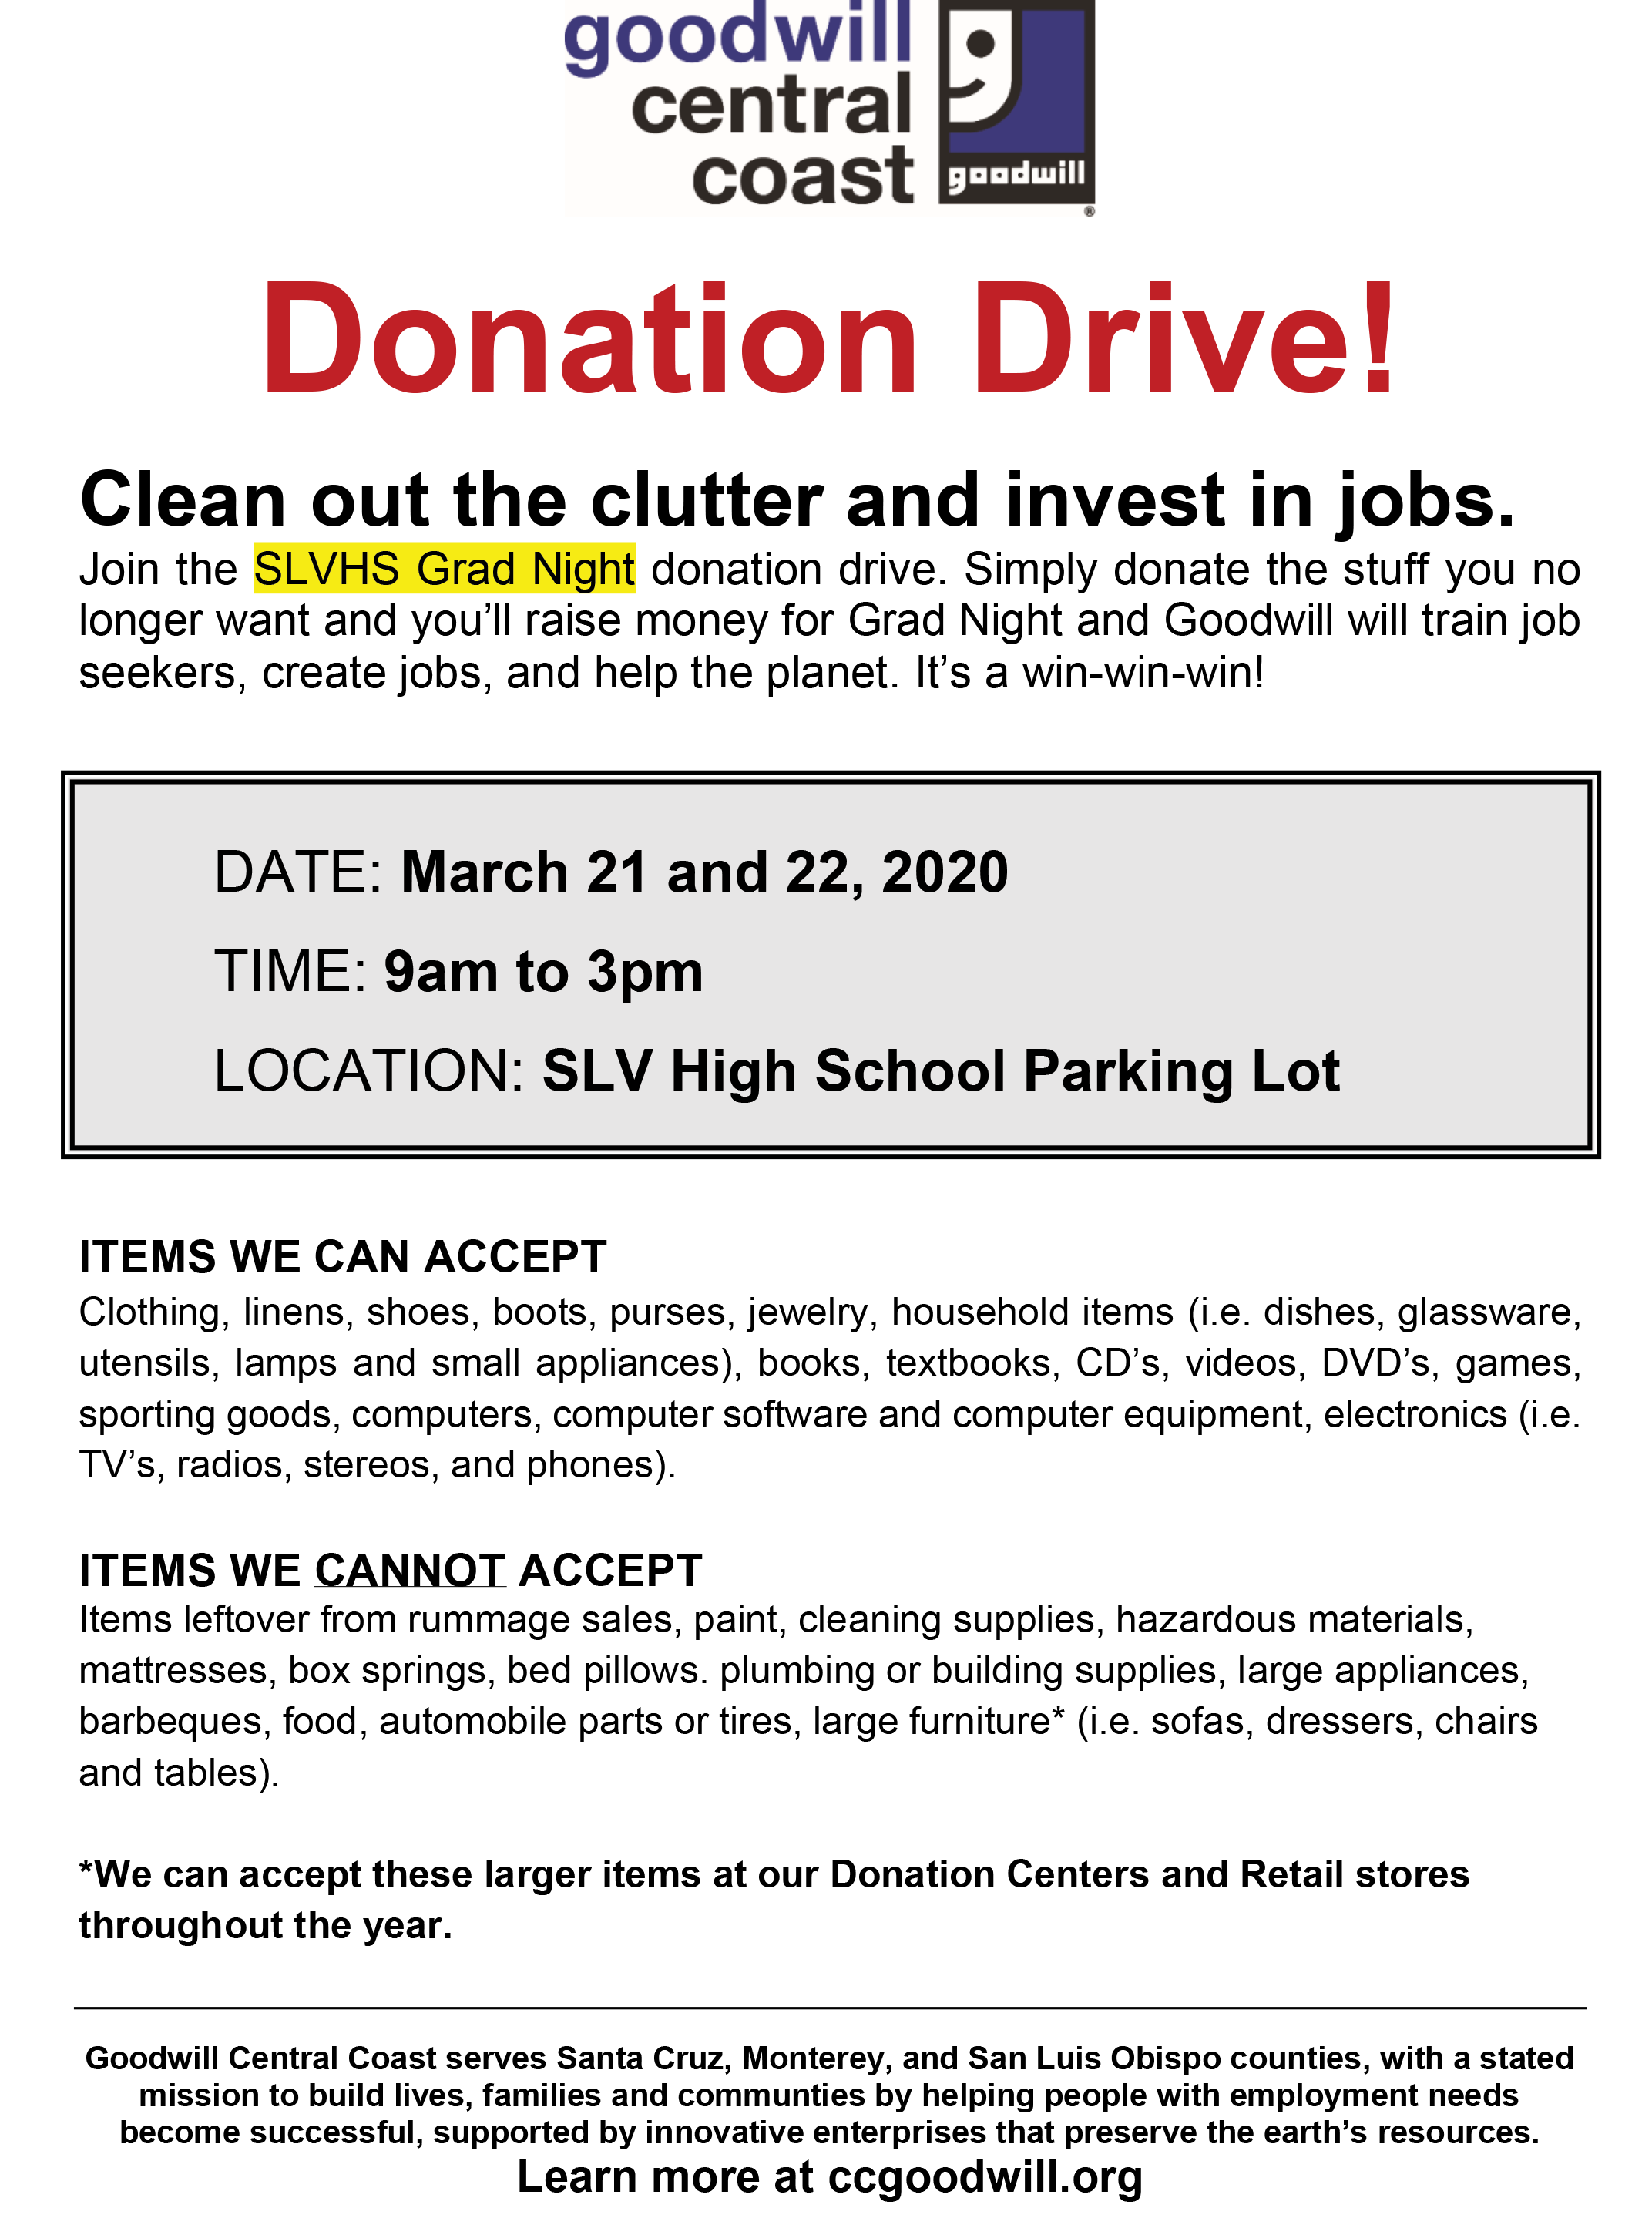 goodwill donation drive March 21-22 9am to 3pm SLVHS parking lot